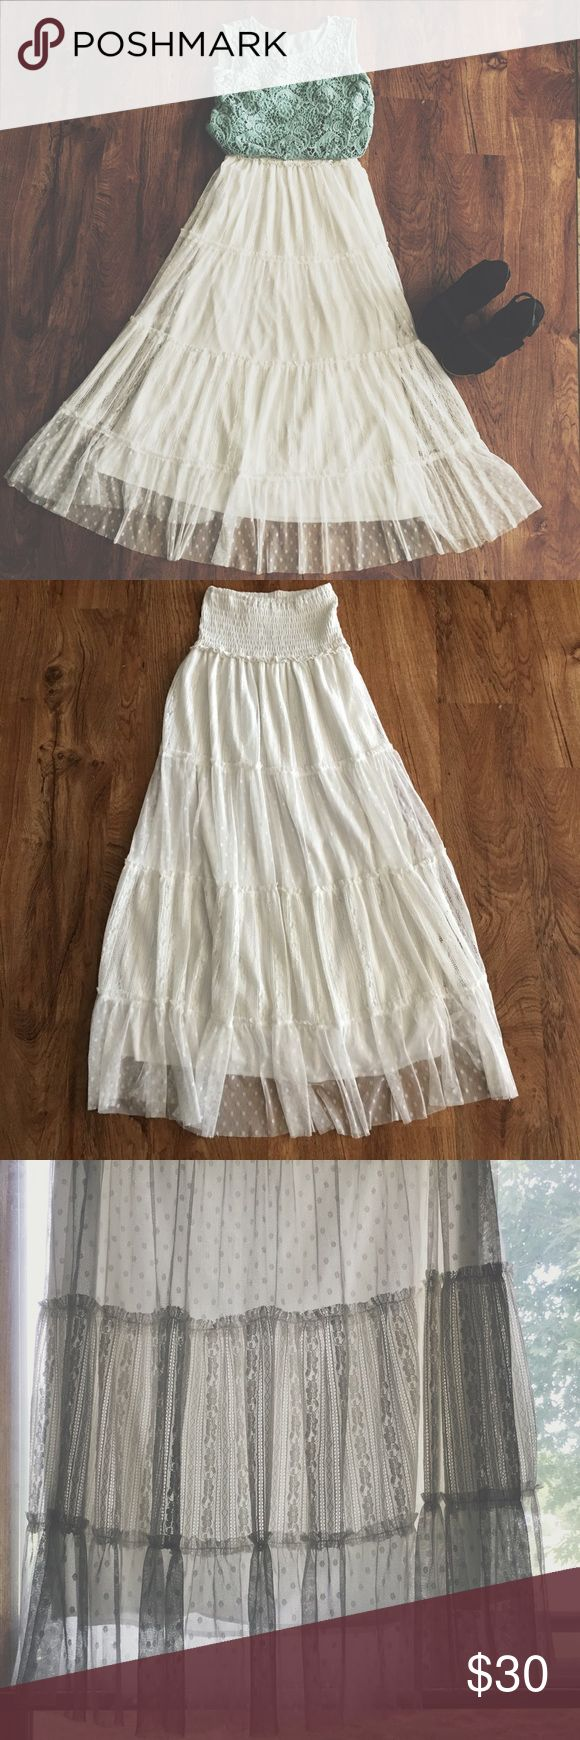 White tule and lace maxi skirt Beautiful and flowing lace and tule maxi skirt. Fully lined, so no need to wear a slip. Each layer alternates between lace and a dotted tule. made in the USA ❤️ Shasa Skirts Maxi